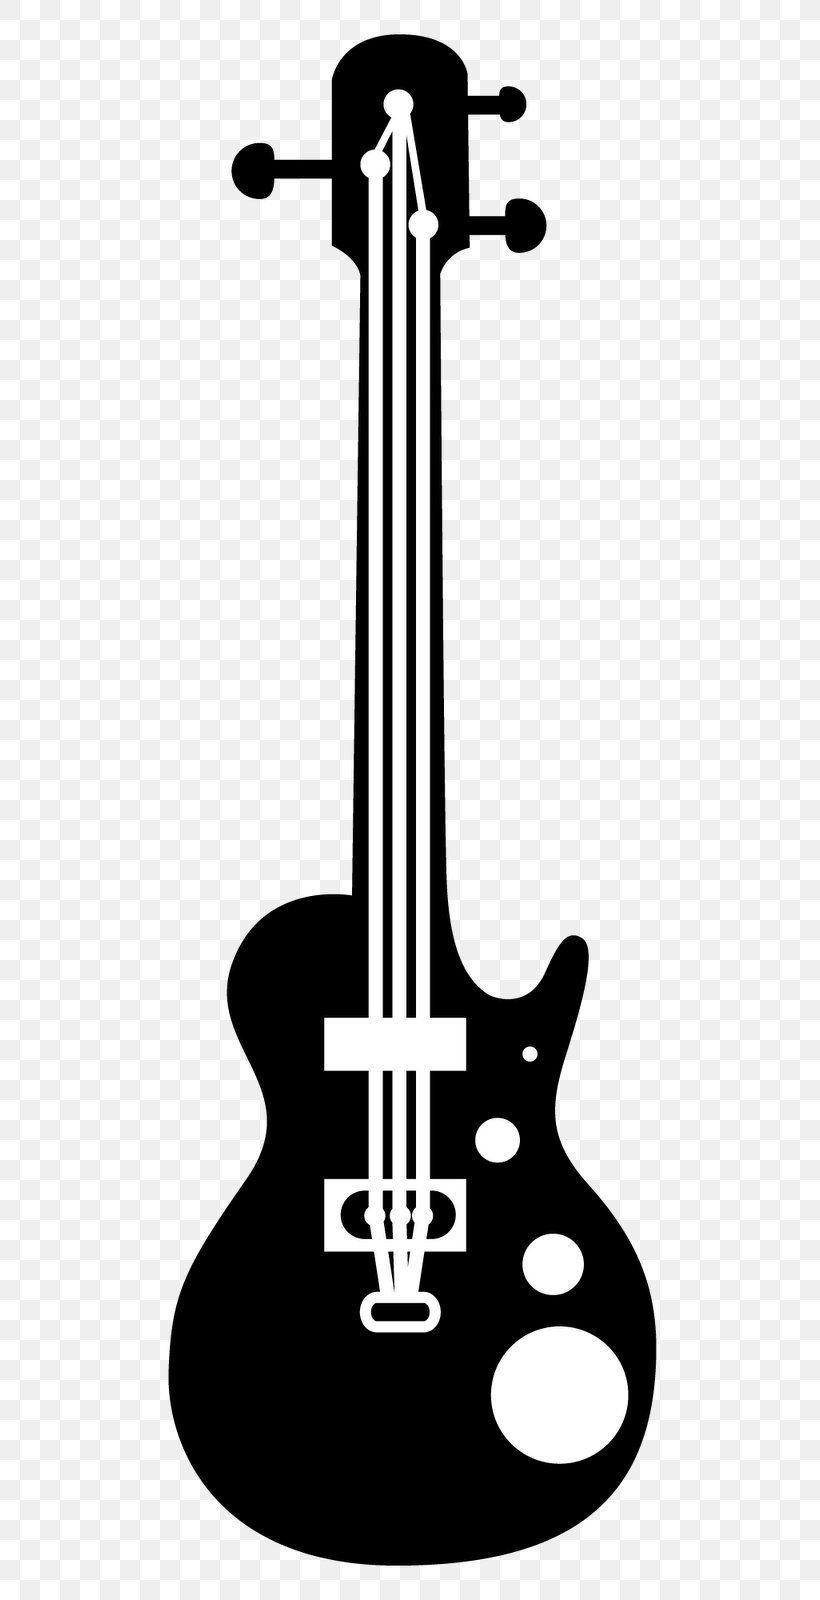 Art Bass Guitar Black And White Png 538x1600px Watercolor Cartoon Flower Frame Heart Download Free